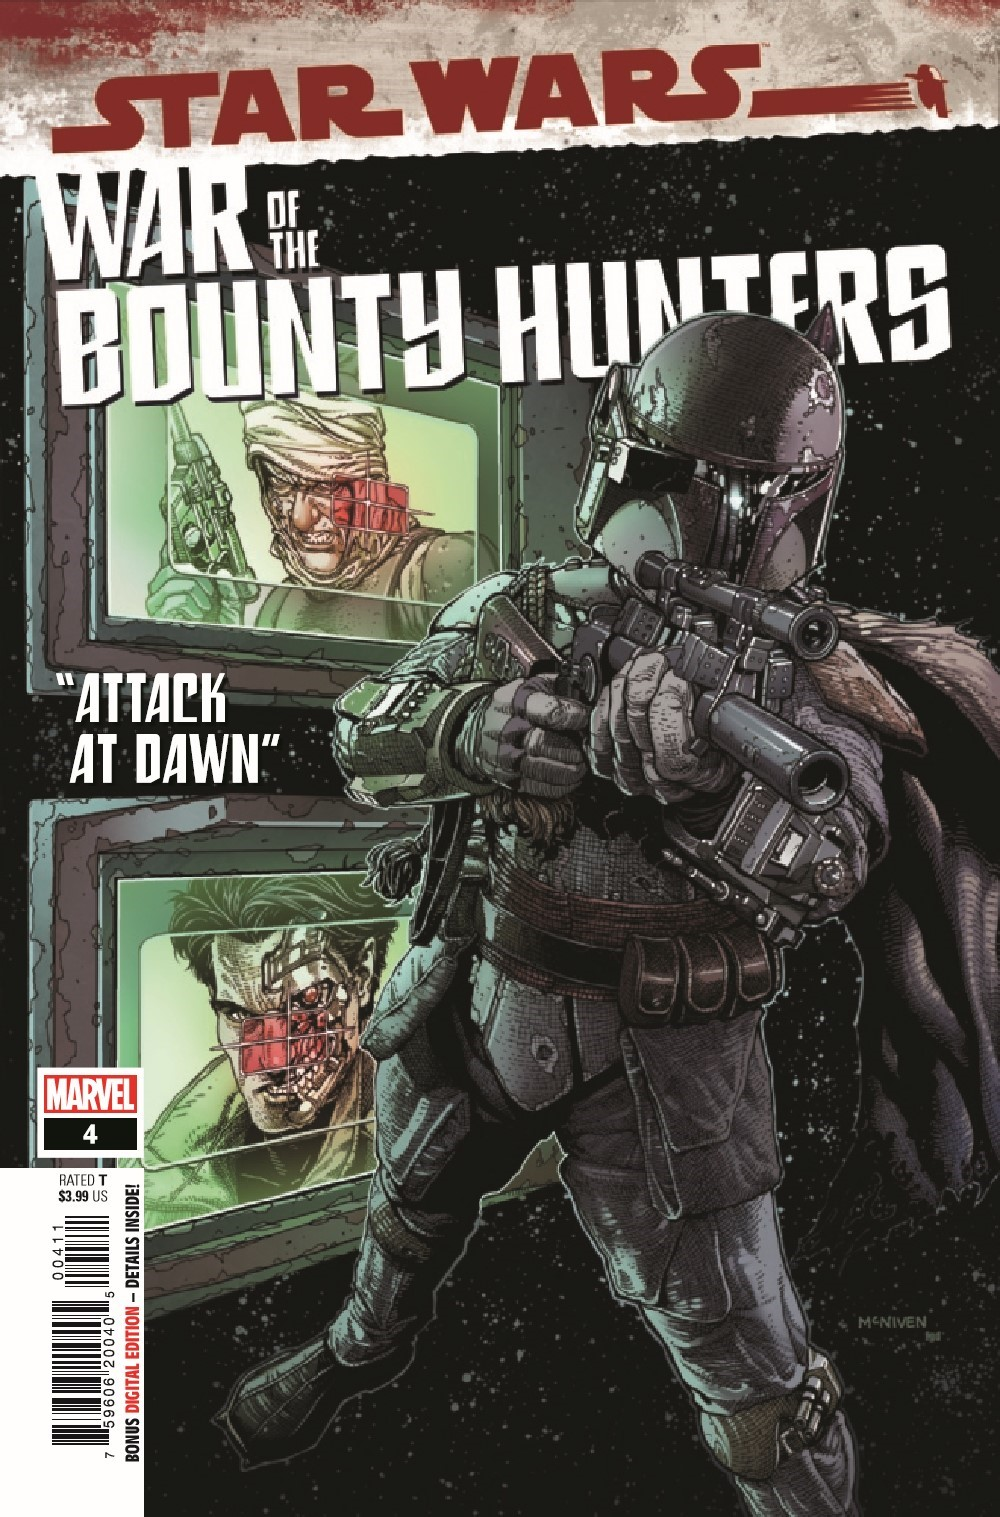 STWWAROTBH2021004_Preview-1 ComicList Previews: STAR WARS WAR OF THE BOUNTY HUNTERS #4 (OF 5)